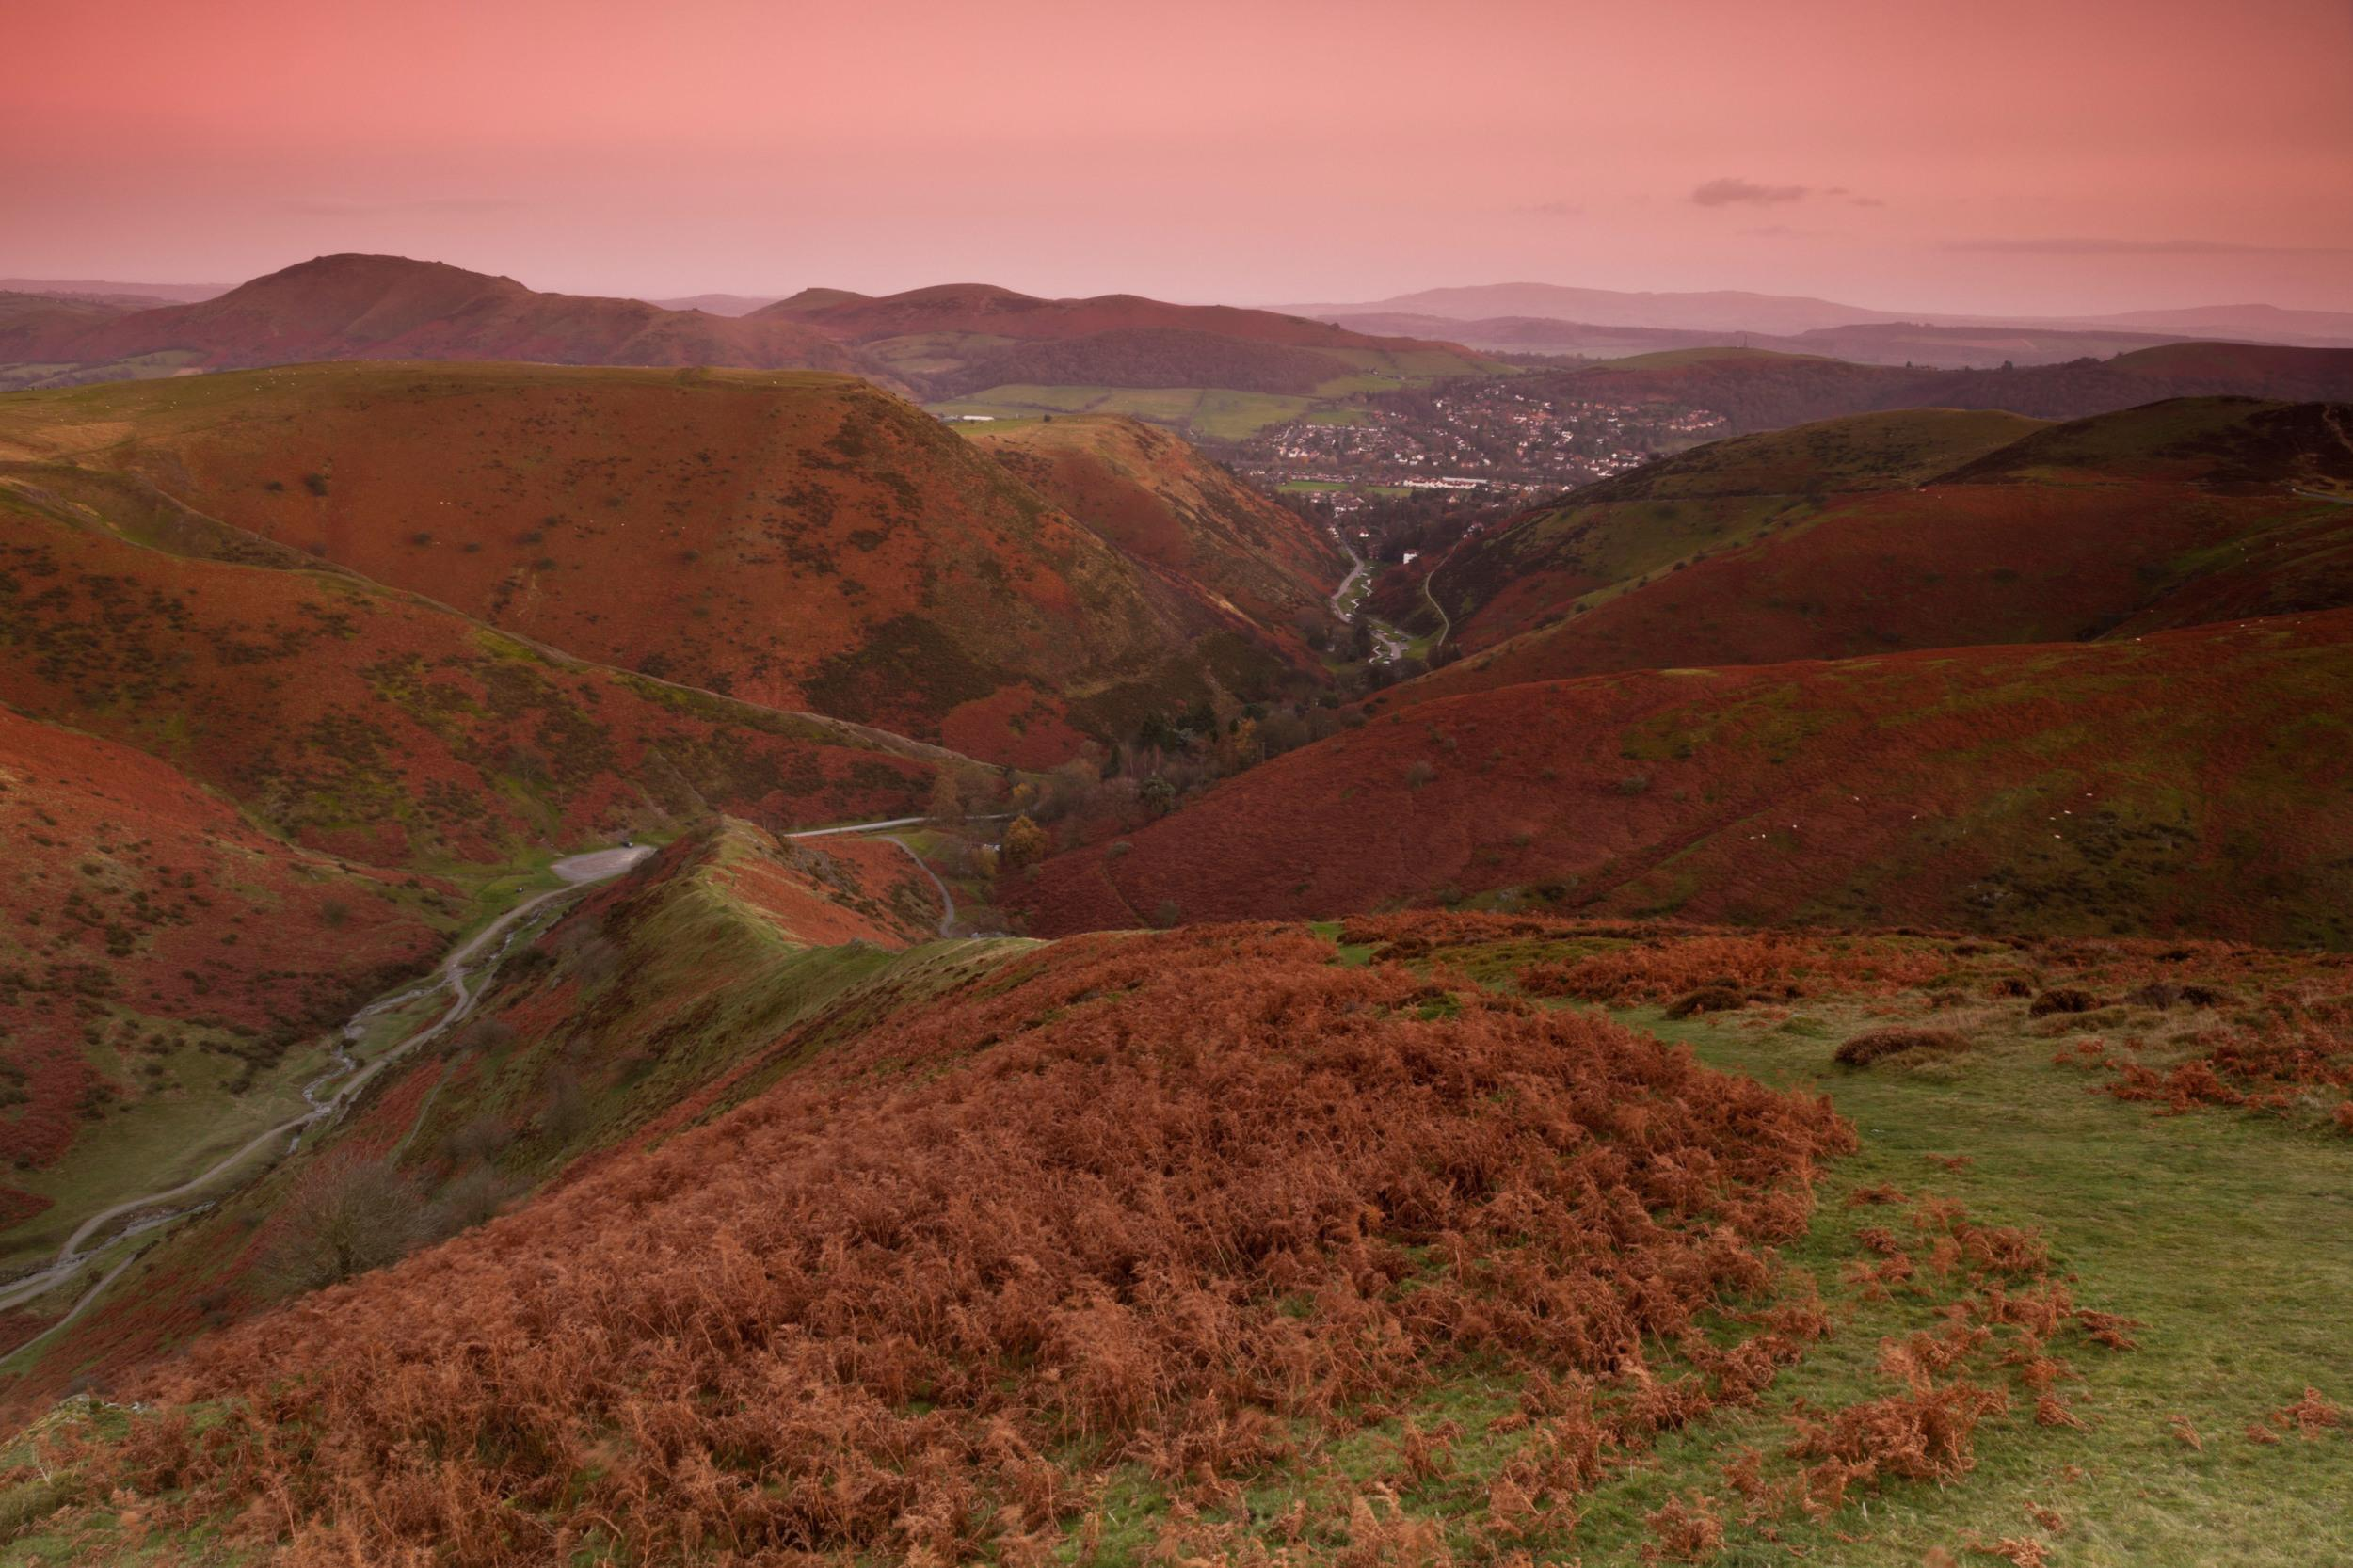 """At this time of year, if you take<a href=""""http://www.nationaltrust.org.uk/cardingautumnwalk"""" style=""""font-size:14.4444446563721px;"""" target=""""_blank"""">the Pipe Walk at Carding Mill Valley</a>you'll be amazed by the blues, golds and greens.<span style=""""font-size:14.4444446563721px;"""">Emily Knight, Conservation Manager at Carding Mill, says: """"For a lot of visitors, the view and colours at Carding Mill are a surprise. As they come out of Church Stretton they cross a cattle grid and suddenly these incredible hills are in front of them.""""</span>"""